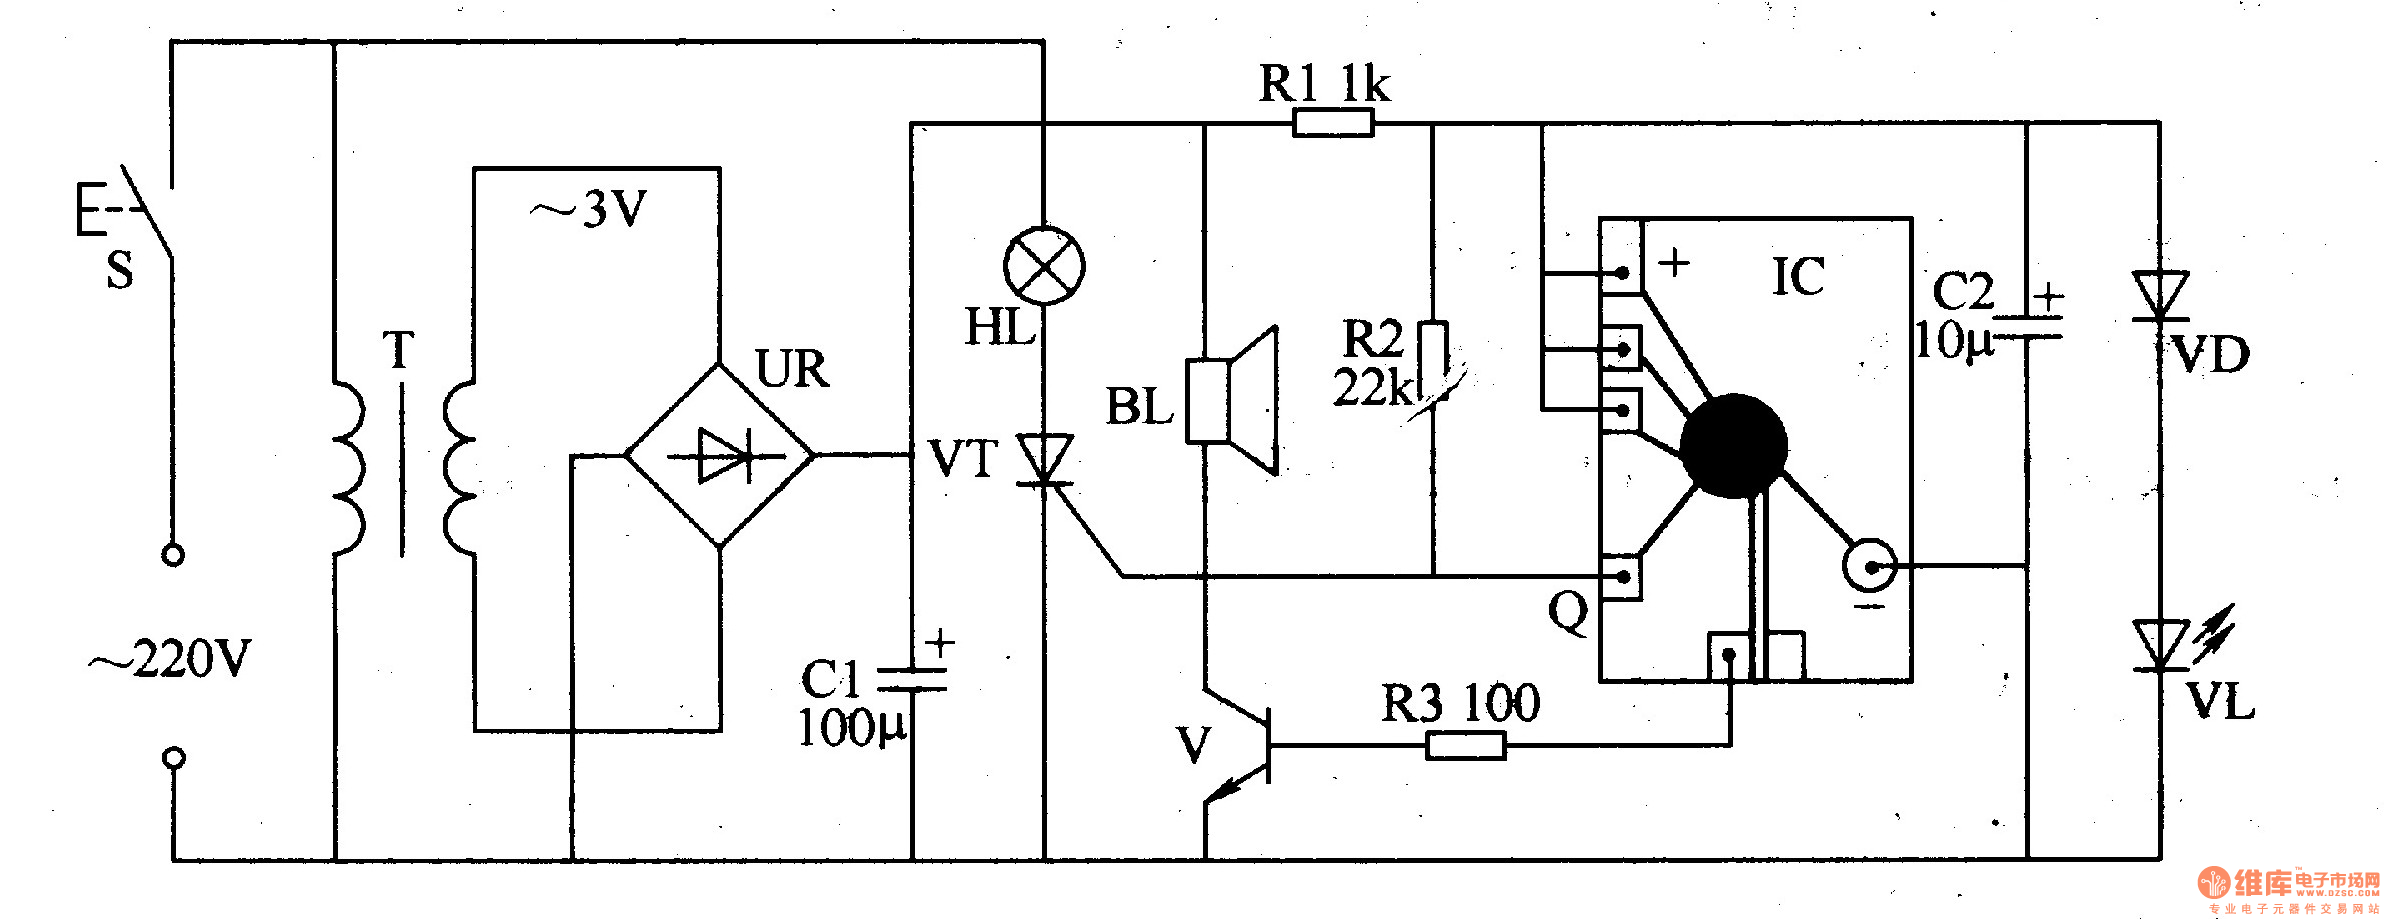 optical electronic doorbell 1 - electrical equipment circuit - circuit diagram